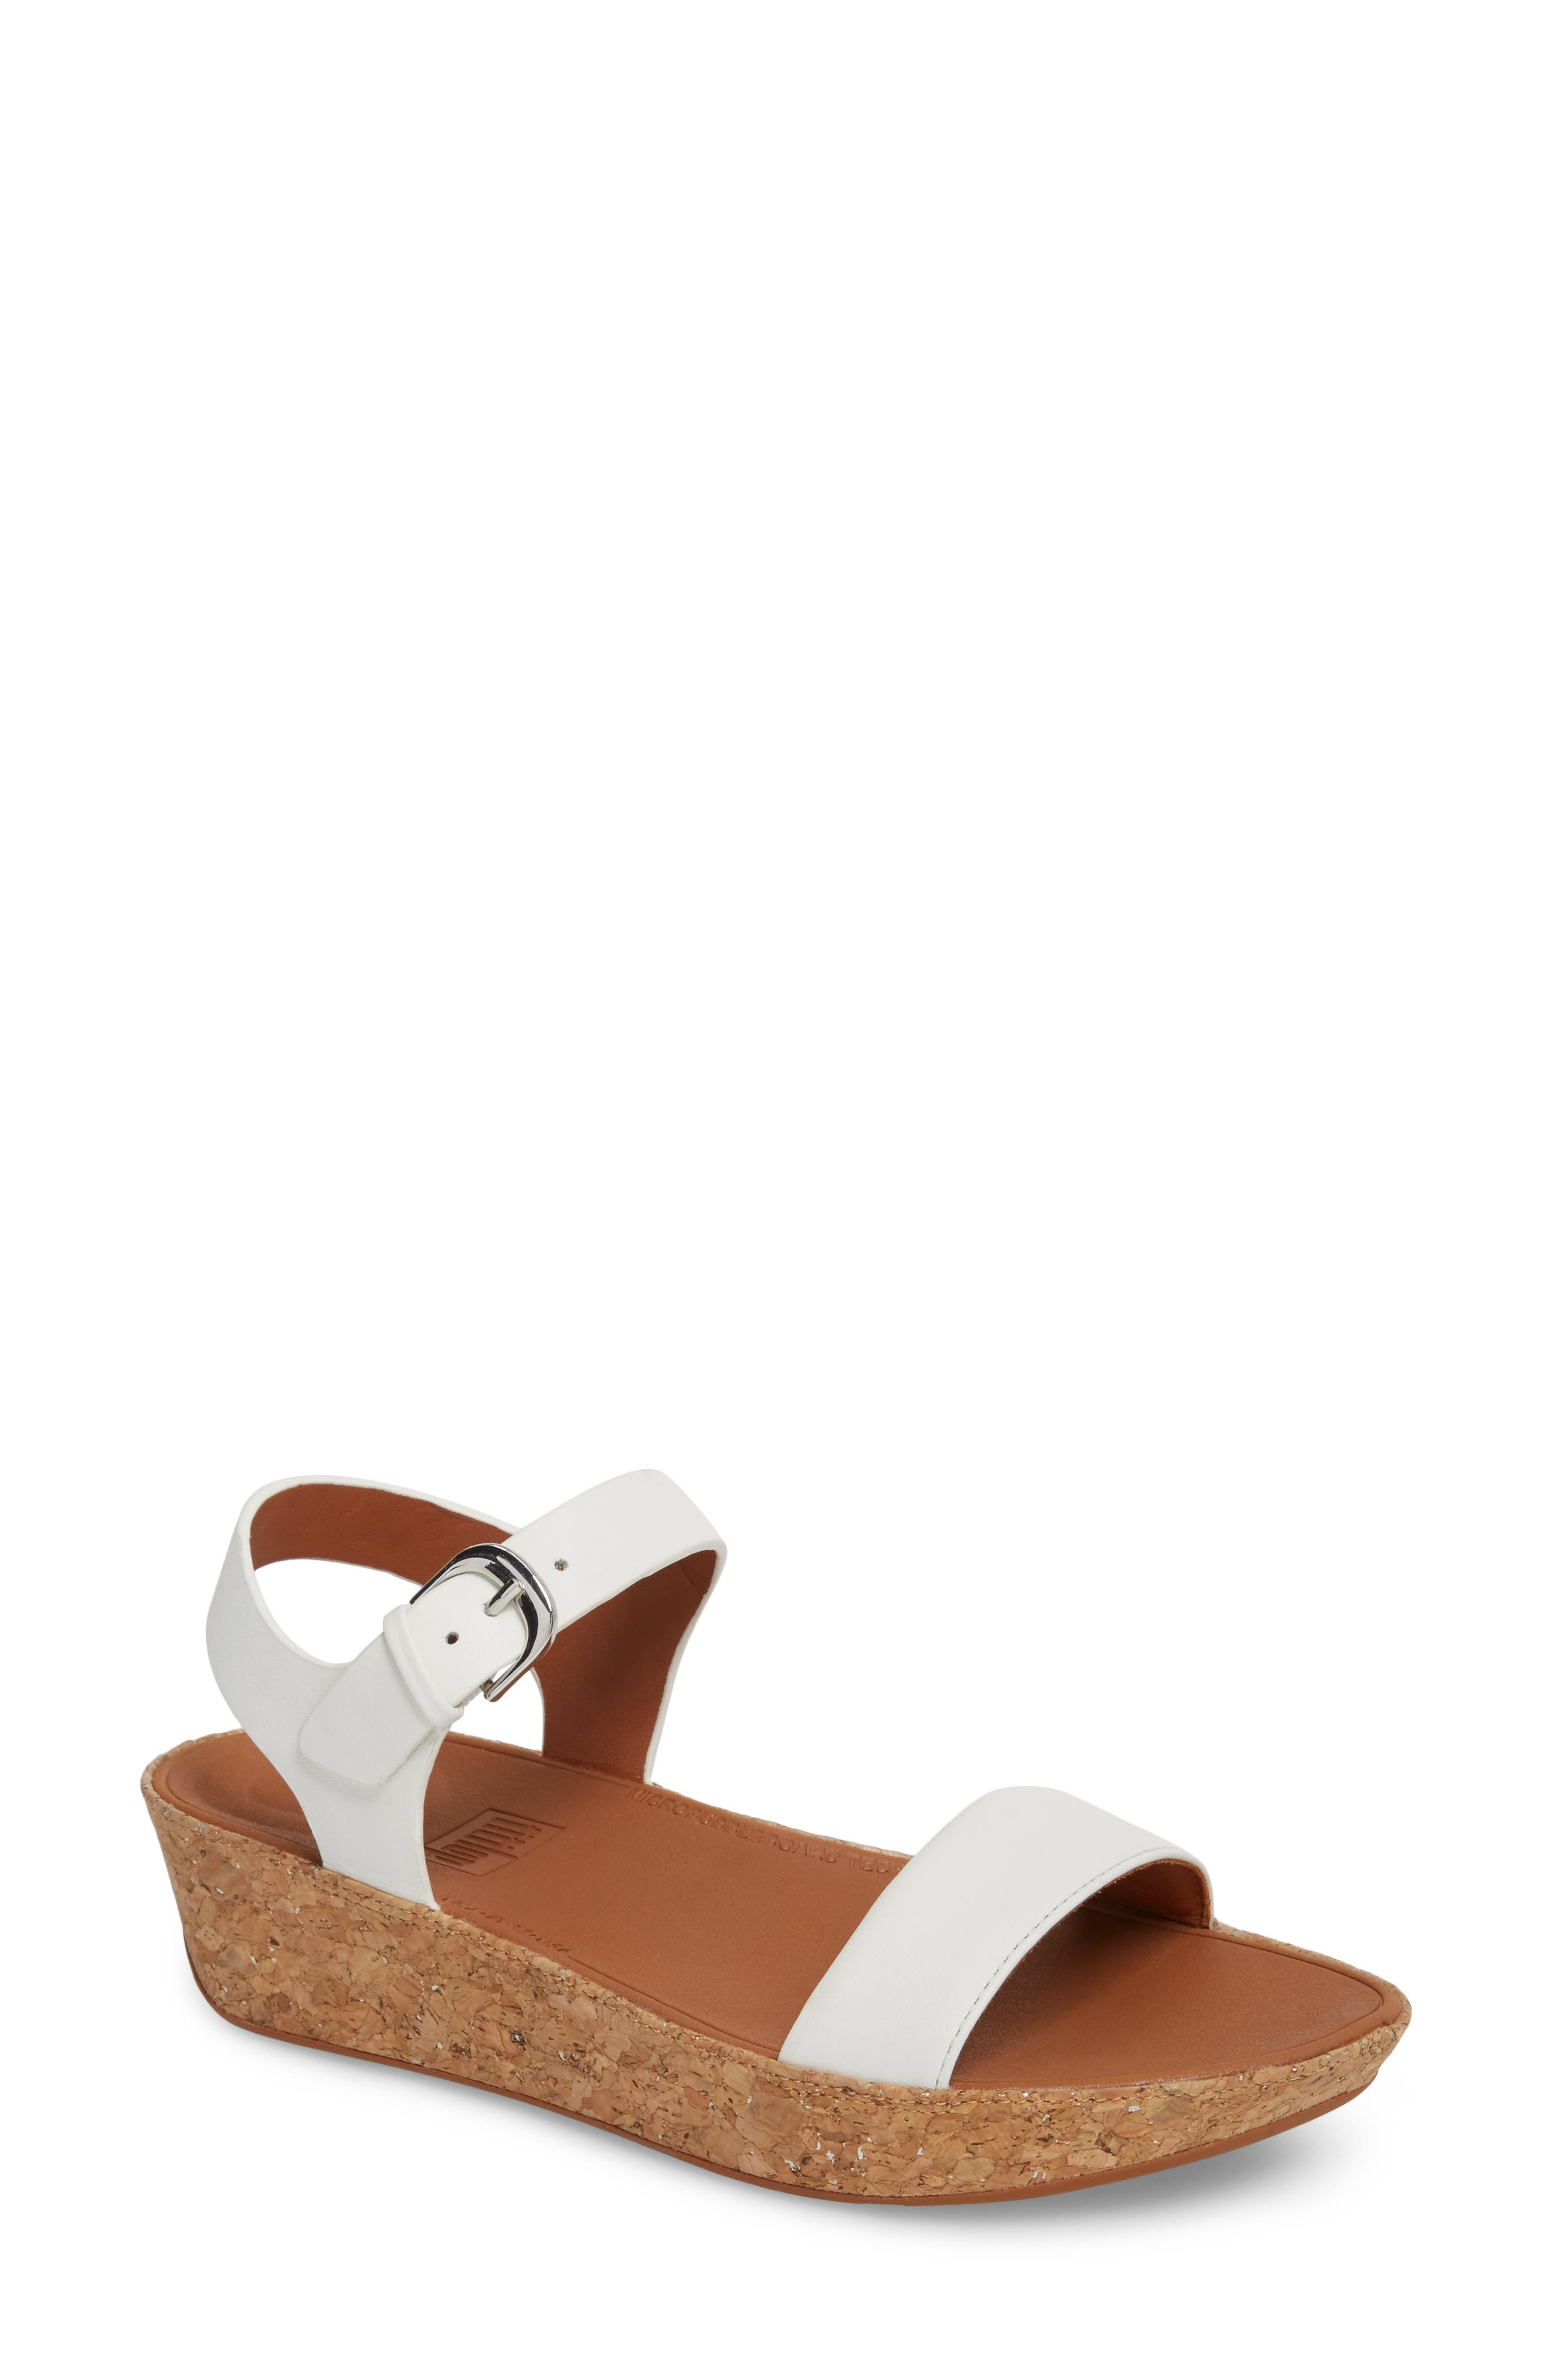 Bon II Platform Sandal,                             Main thumbnail 1, color,                             Urban White Leather